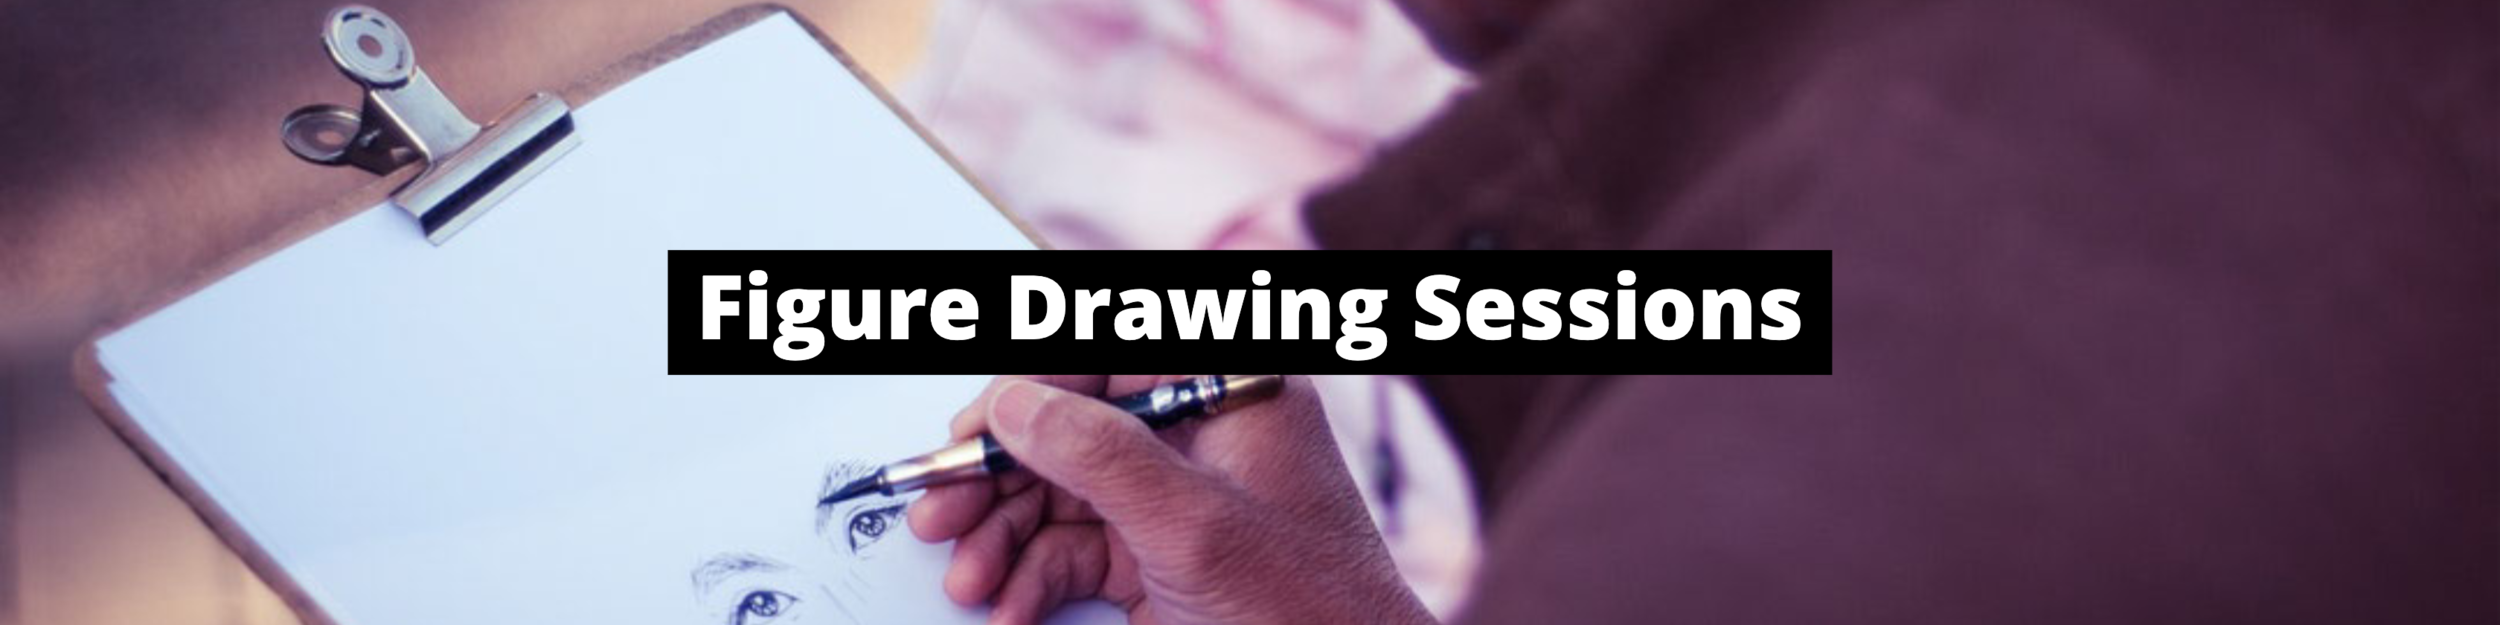 Figure Drawing Sessions (1).png